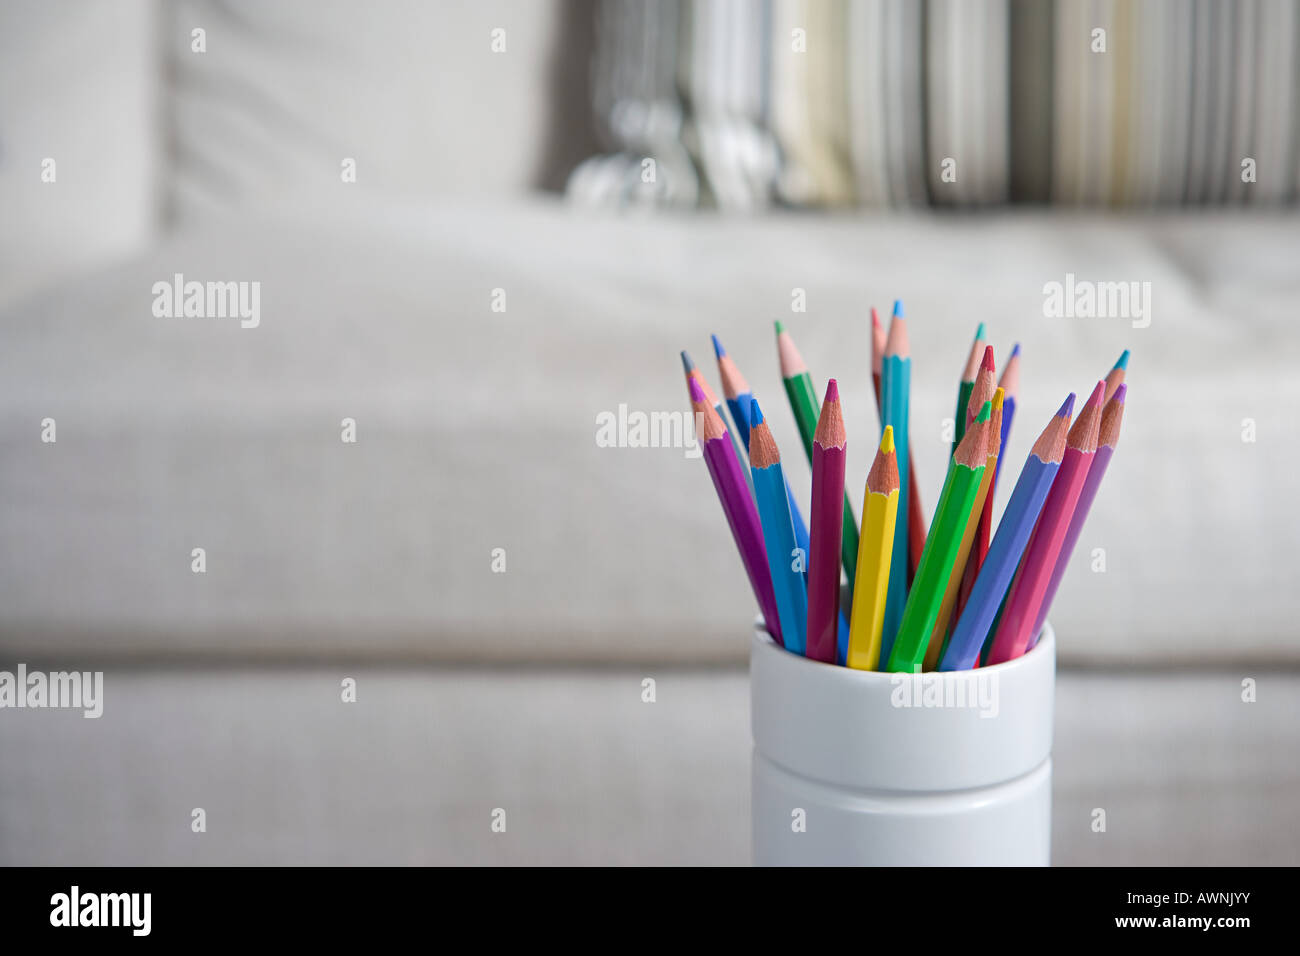 Coloured pencils in a desk tidy - Stock Image